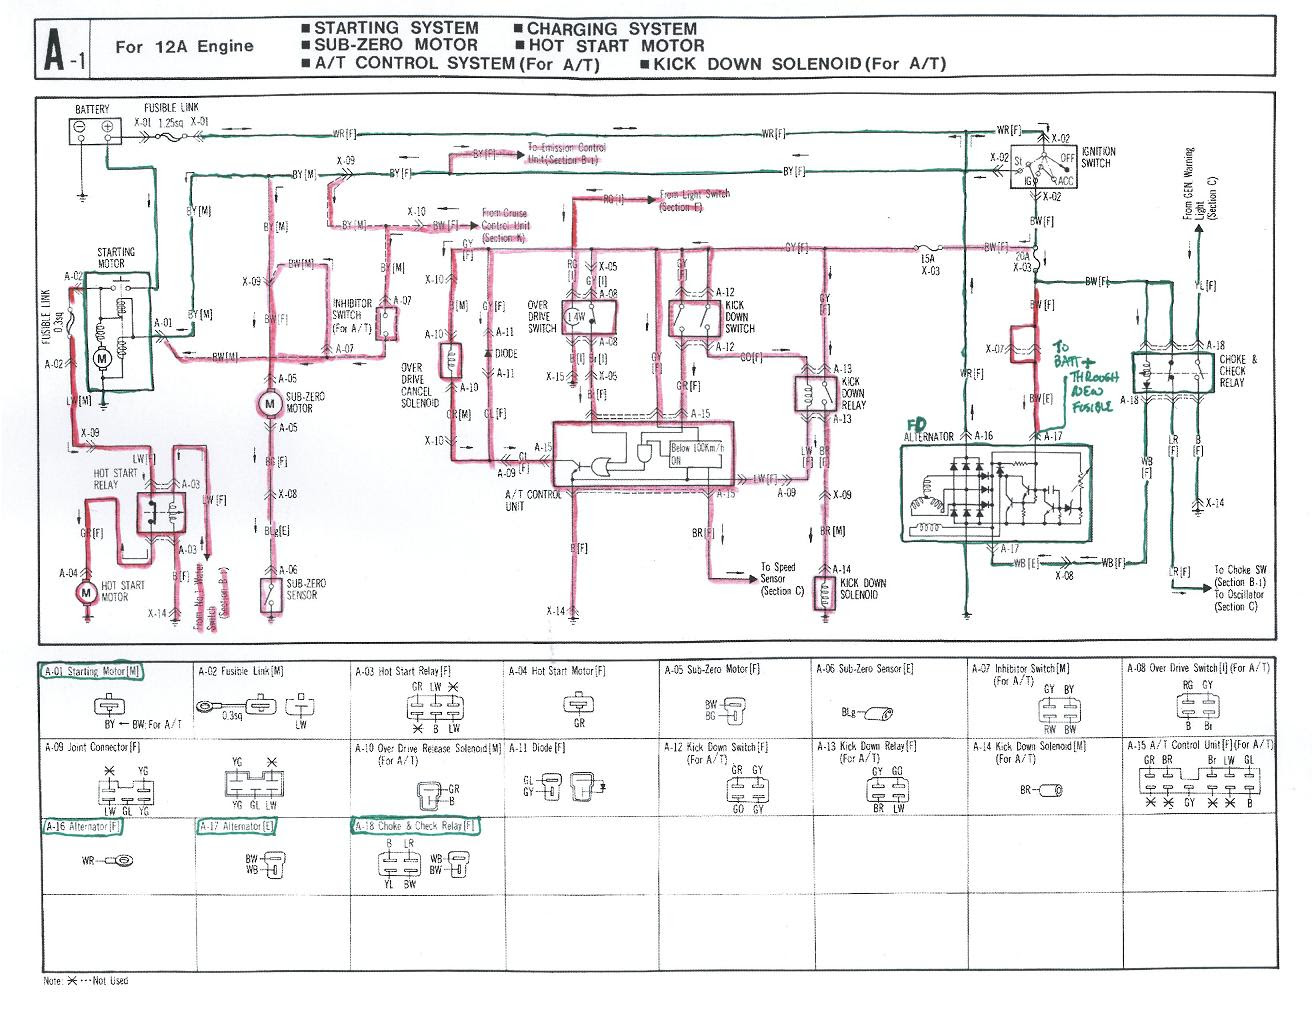 2007 Sterling Truck Wiring Diagram Wiring Diagrams Register Register Miglioribanche It